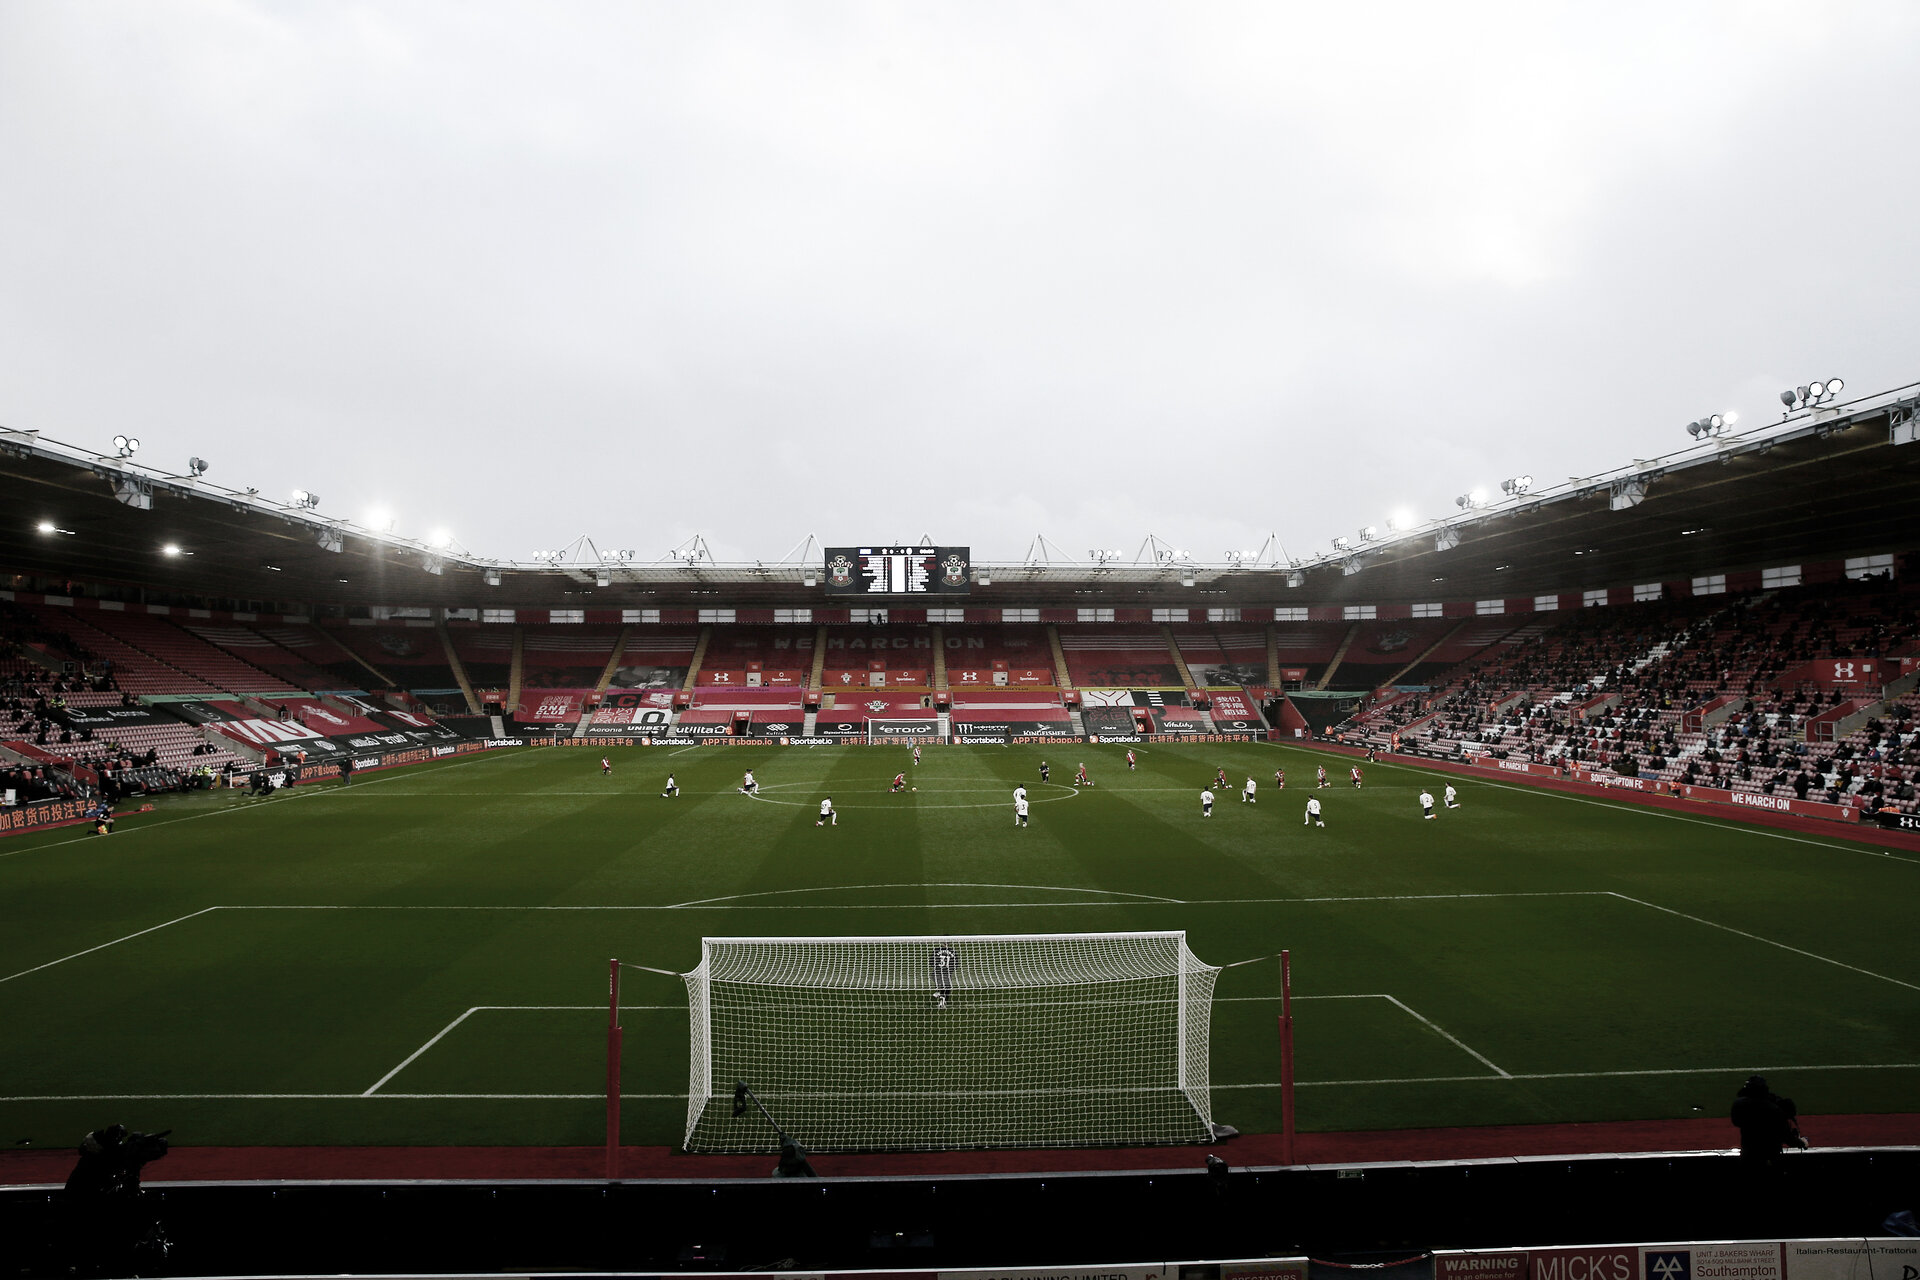 SOUTHAMPTON, ENGLAND - DECEMBER 19: Players take a knee in support of an anti-racism message during the Premier League match between Southampton and Manchester City at St Mary's Stadium on December 19, 2020 in Southampton, England. A limited number of fans (2000) are welcomed back to stadiums to watch elite football across England. This was following easing of restrictions on spectators in tiers one and two areas only. (Photo by Matt Watson/Southampton FC via Getty Images)